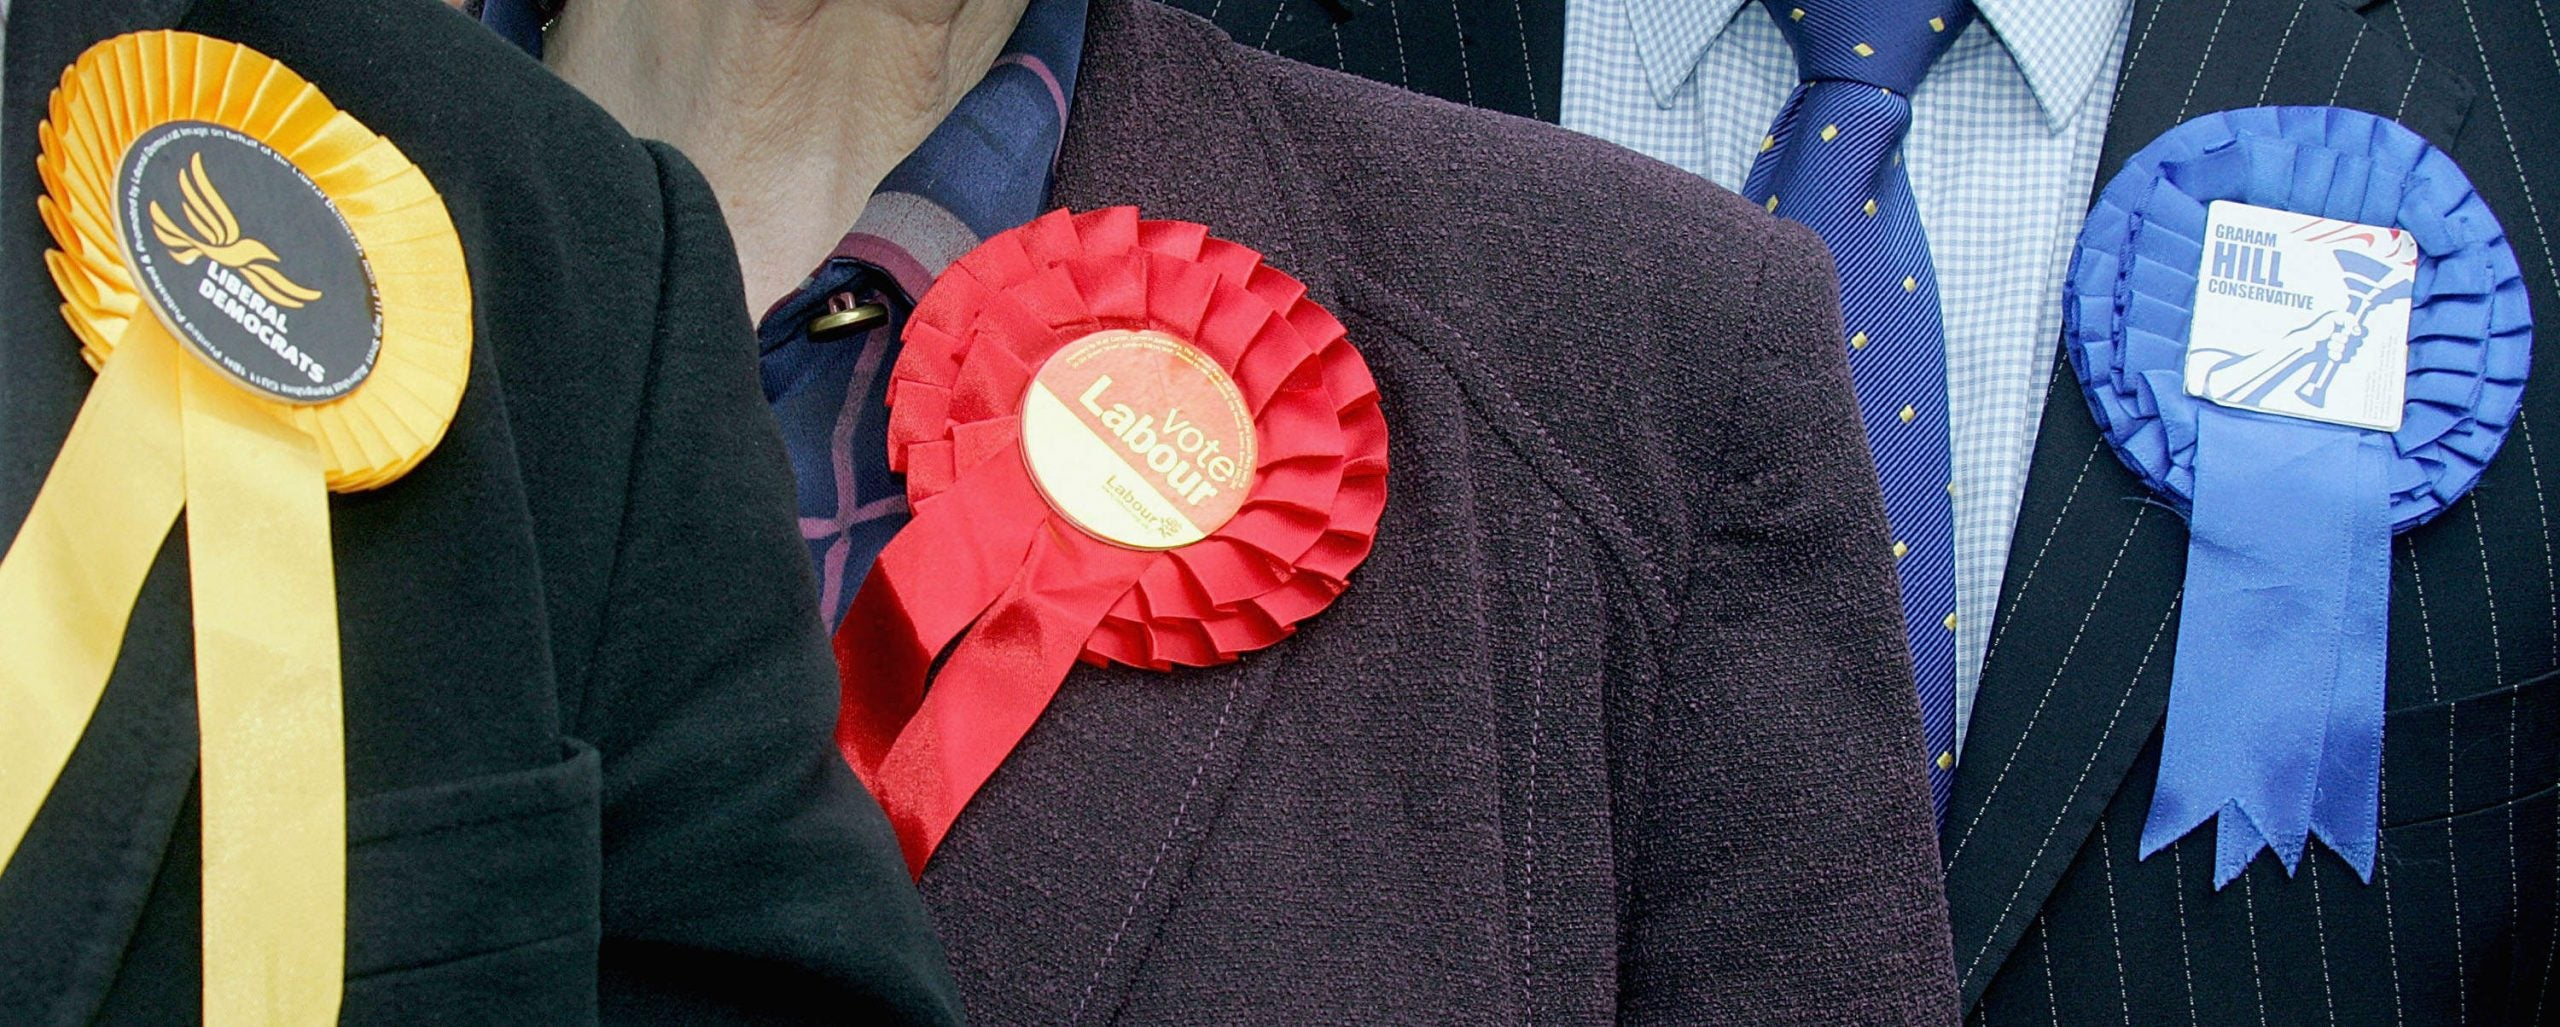 For progress to occur, Labour in its current form must bow out